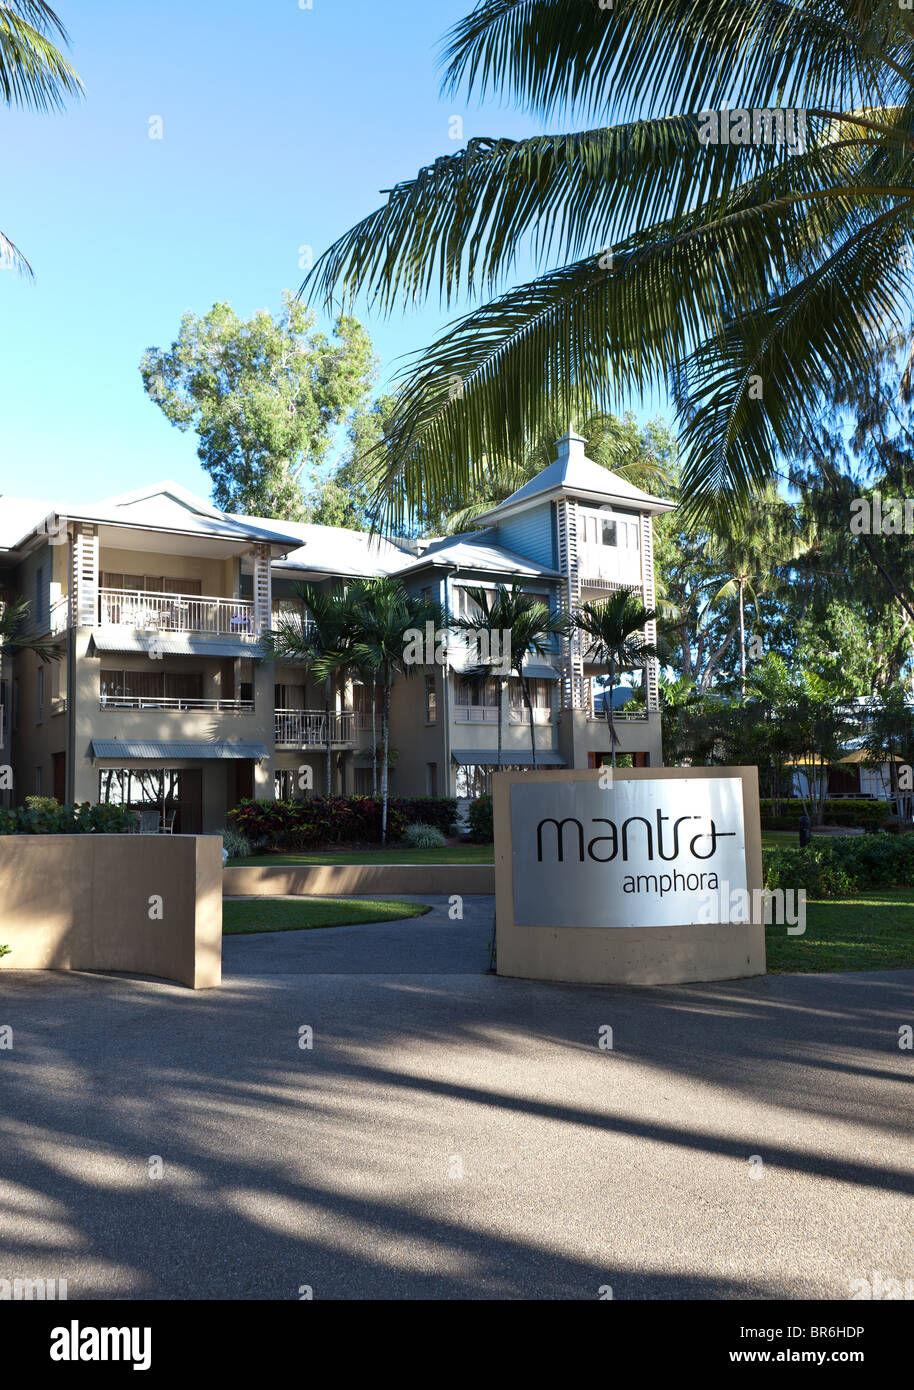 Mantra hotel in Palm Cove, Queensland - Stock Image